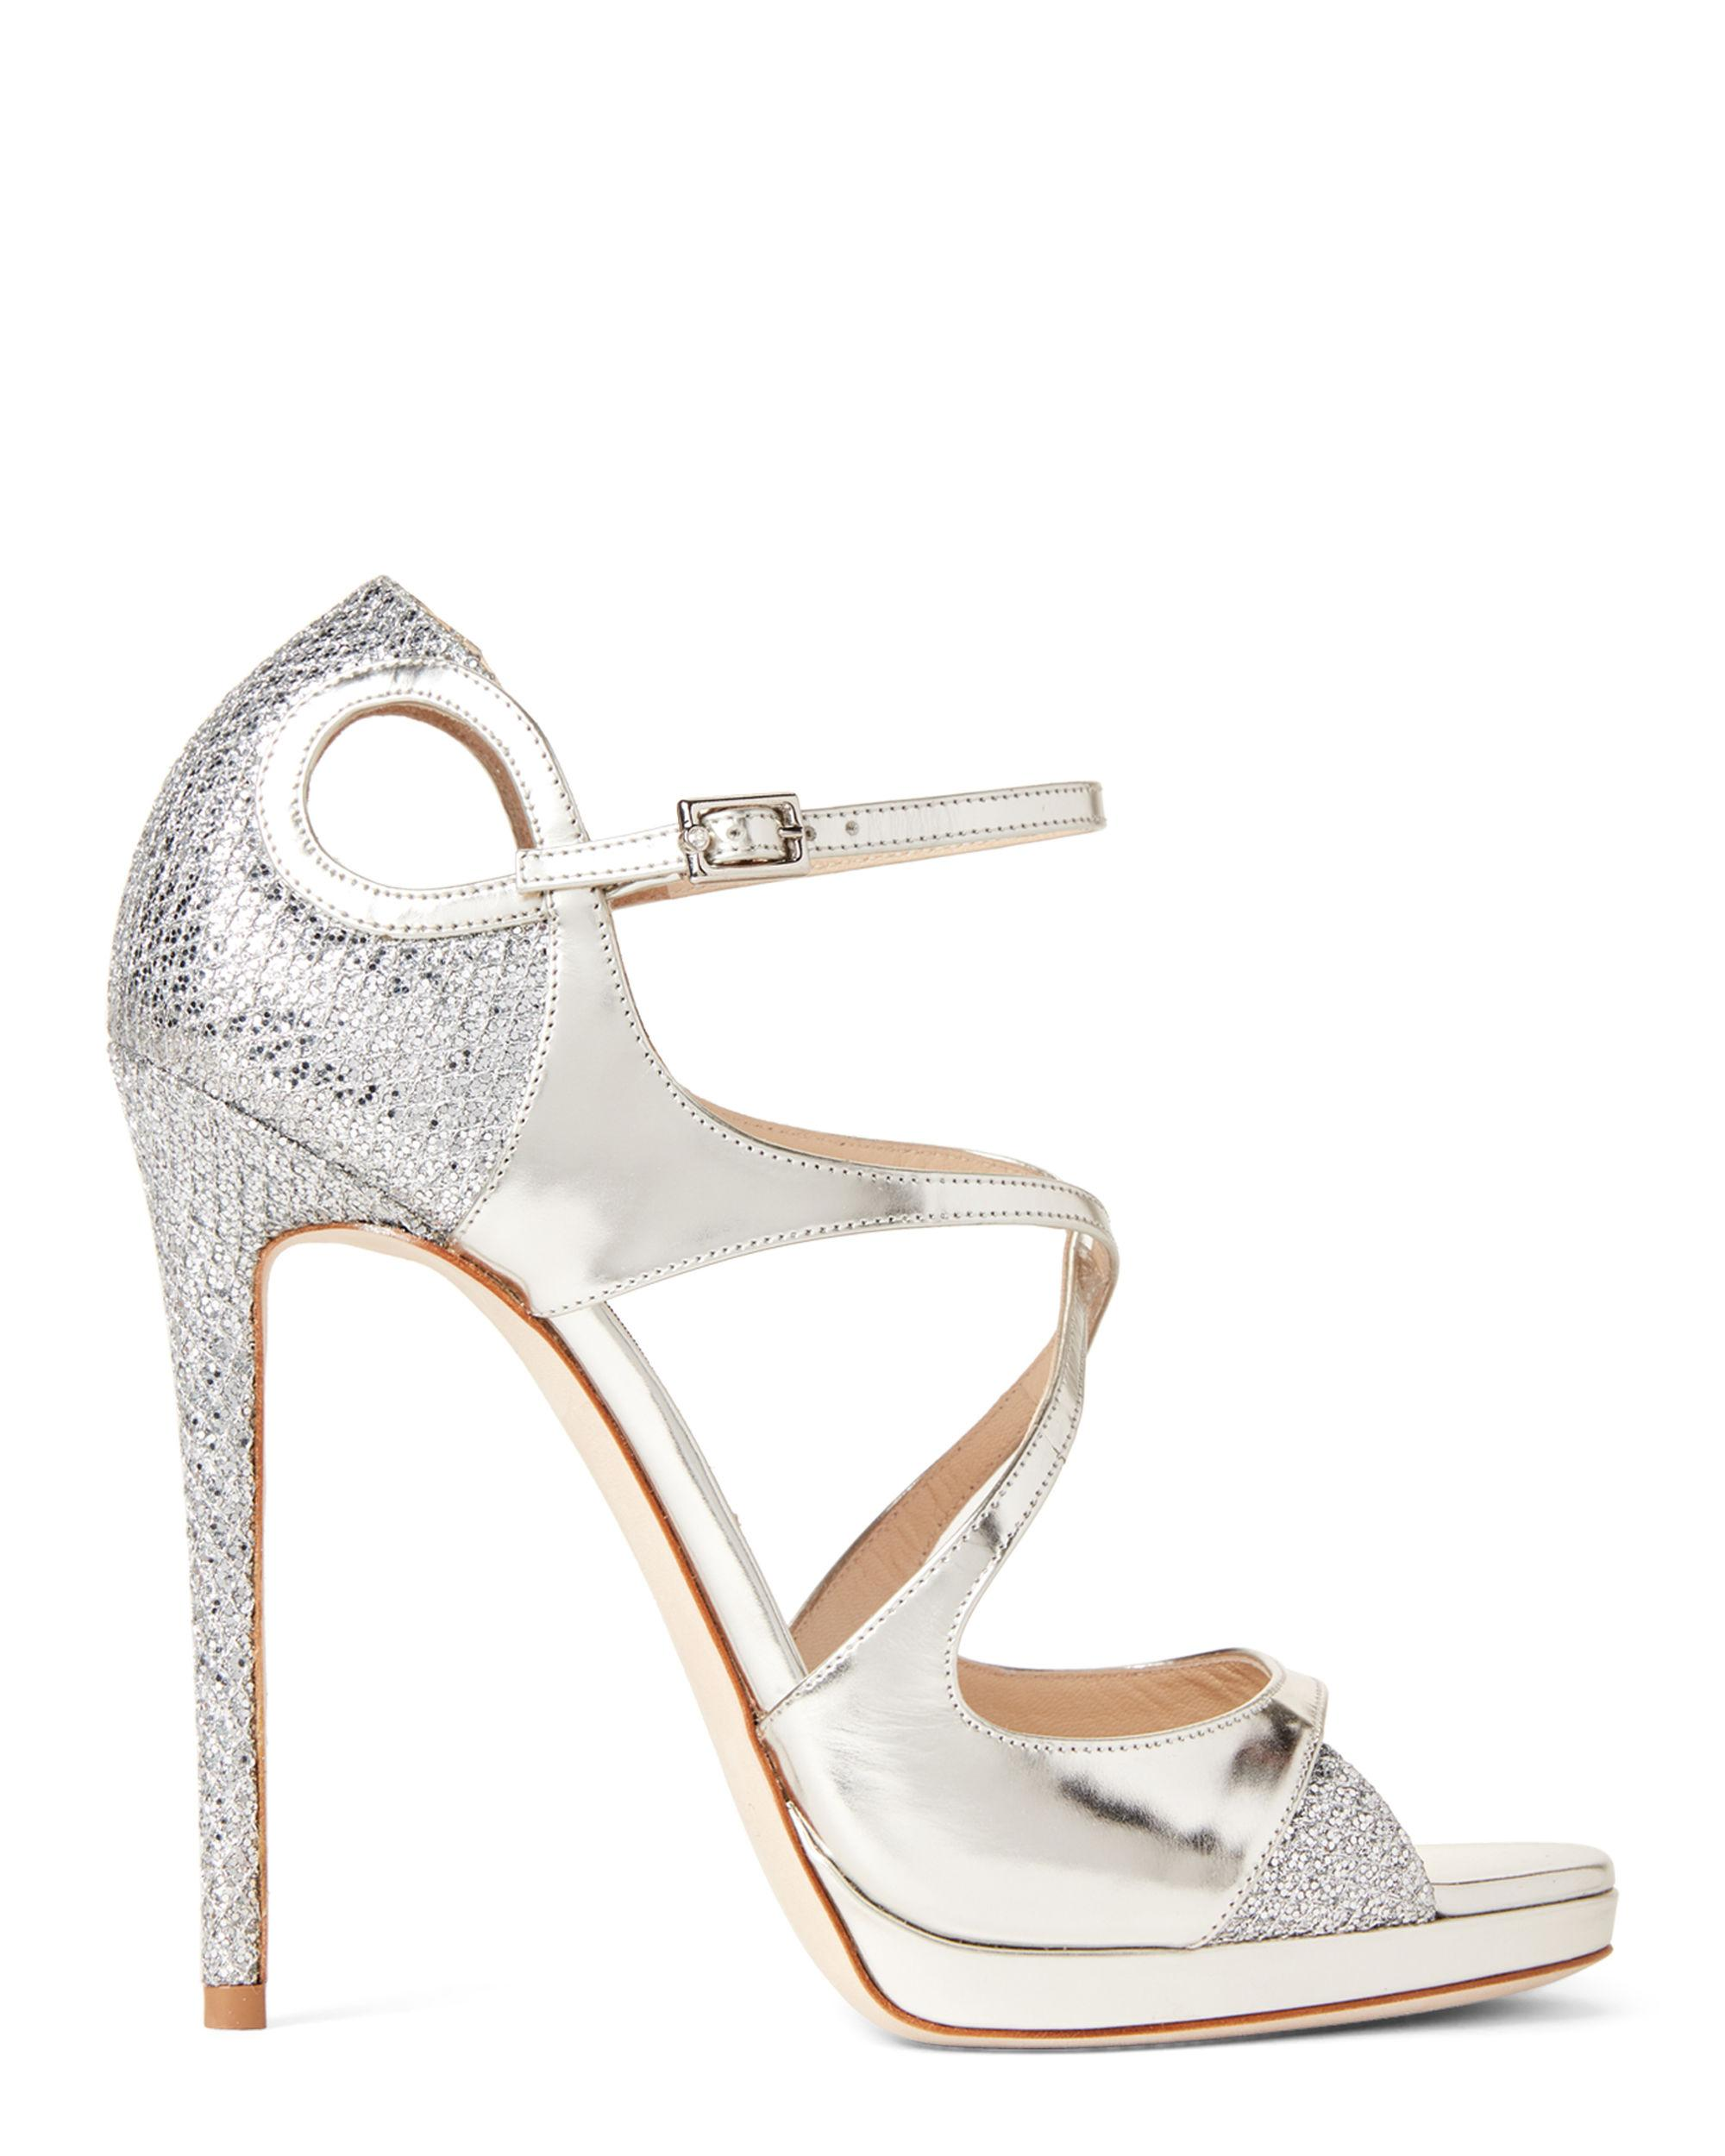 4dbf5e5401c Lyst - Jimmy Choo Silver Fancie Metallic Leather Sandals in Metallic - Save  25%